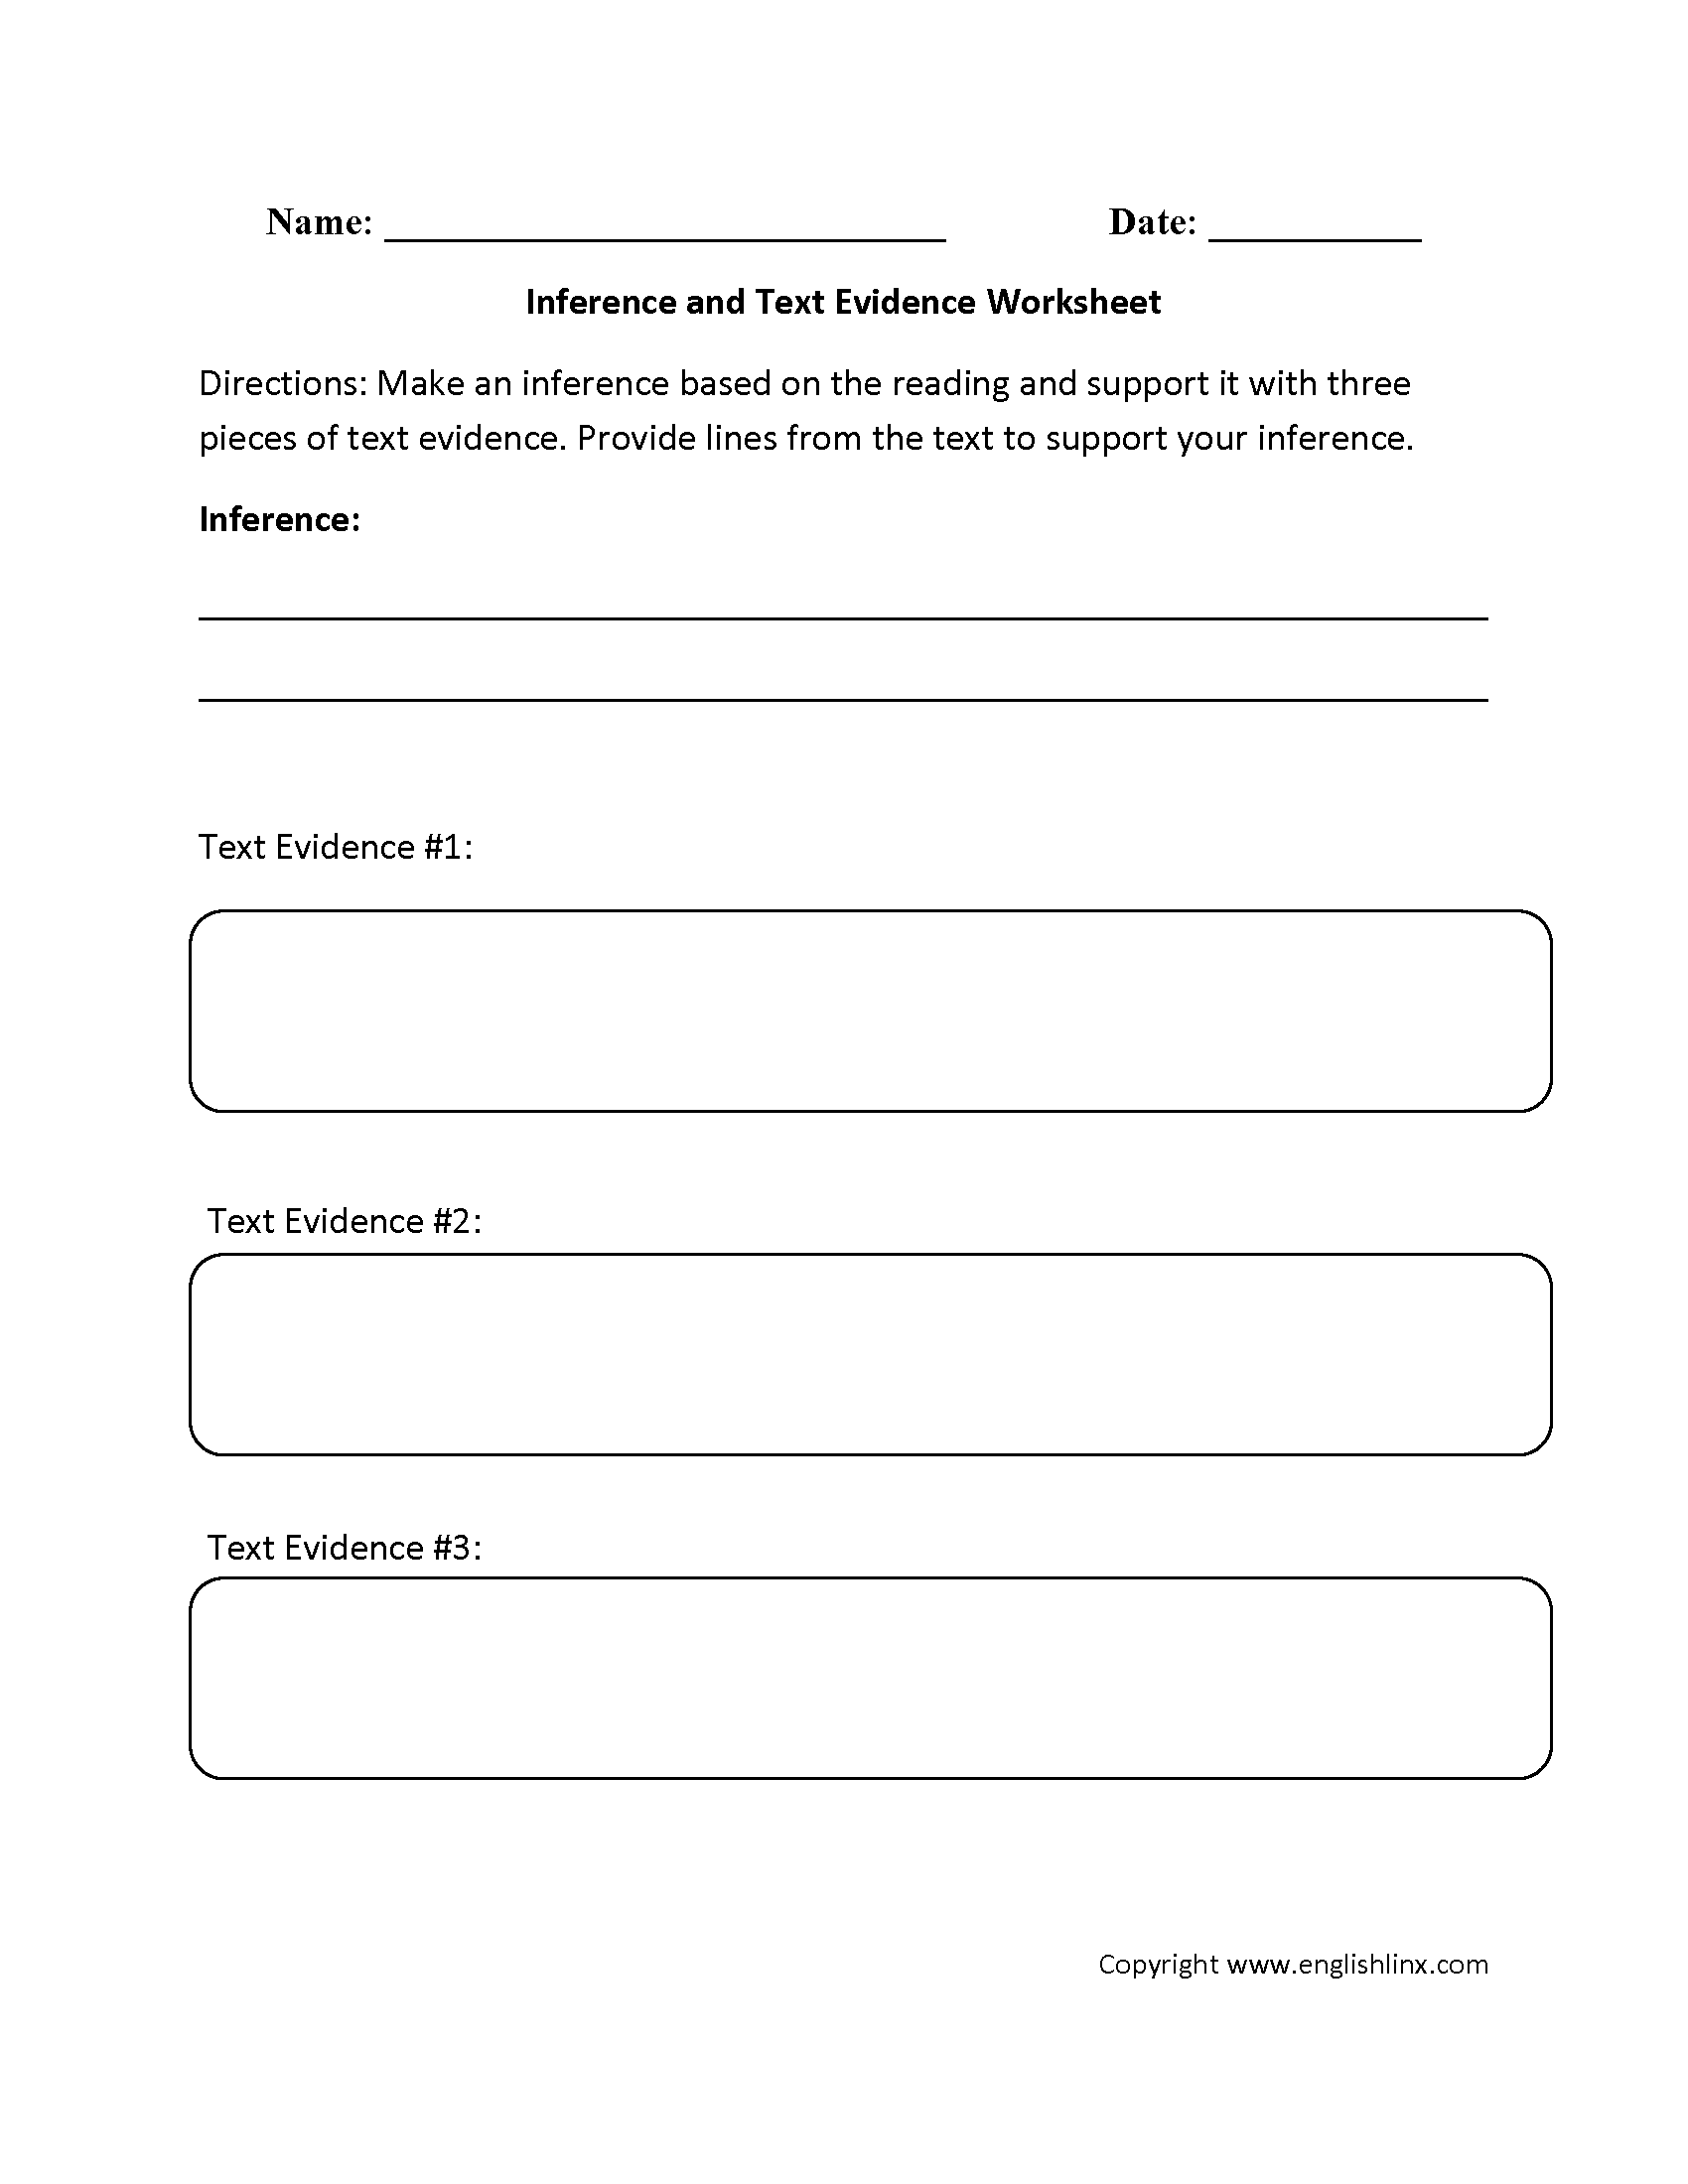 Free Worksheet Inference Worksheets For 5th Grade – Inference Worksheets 4th Grade